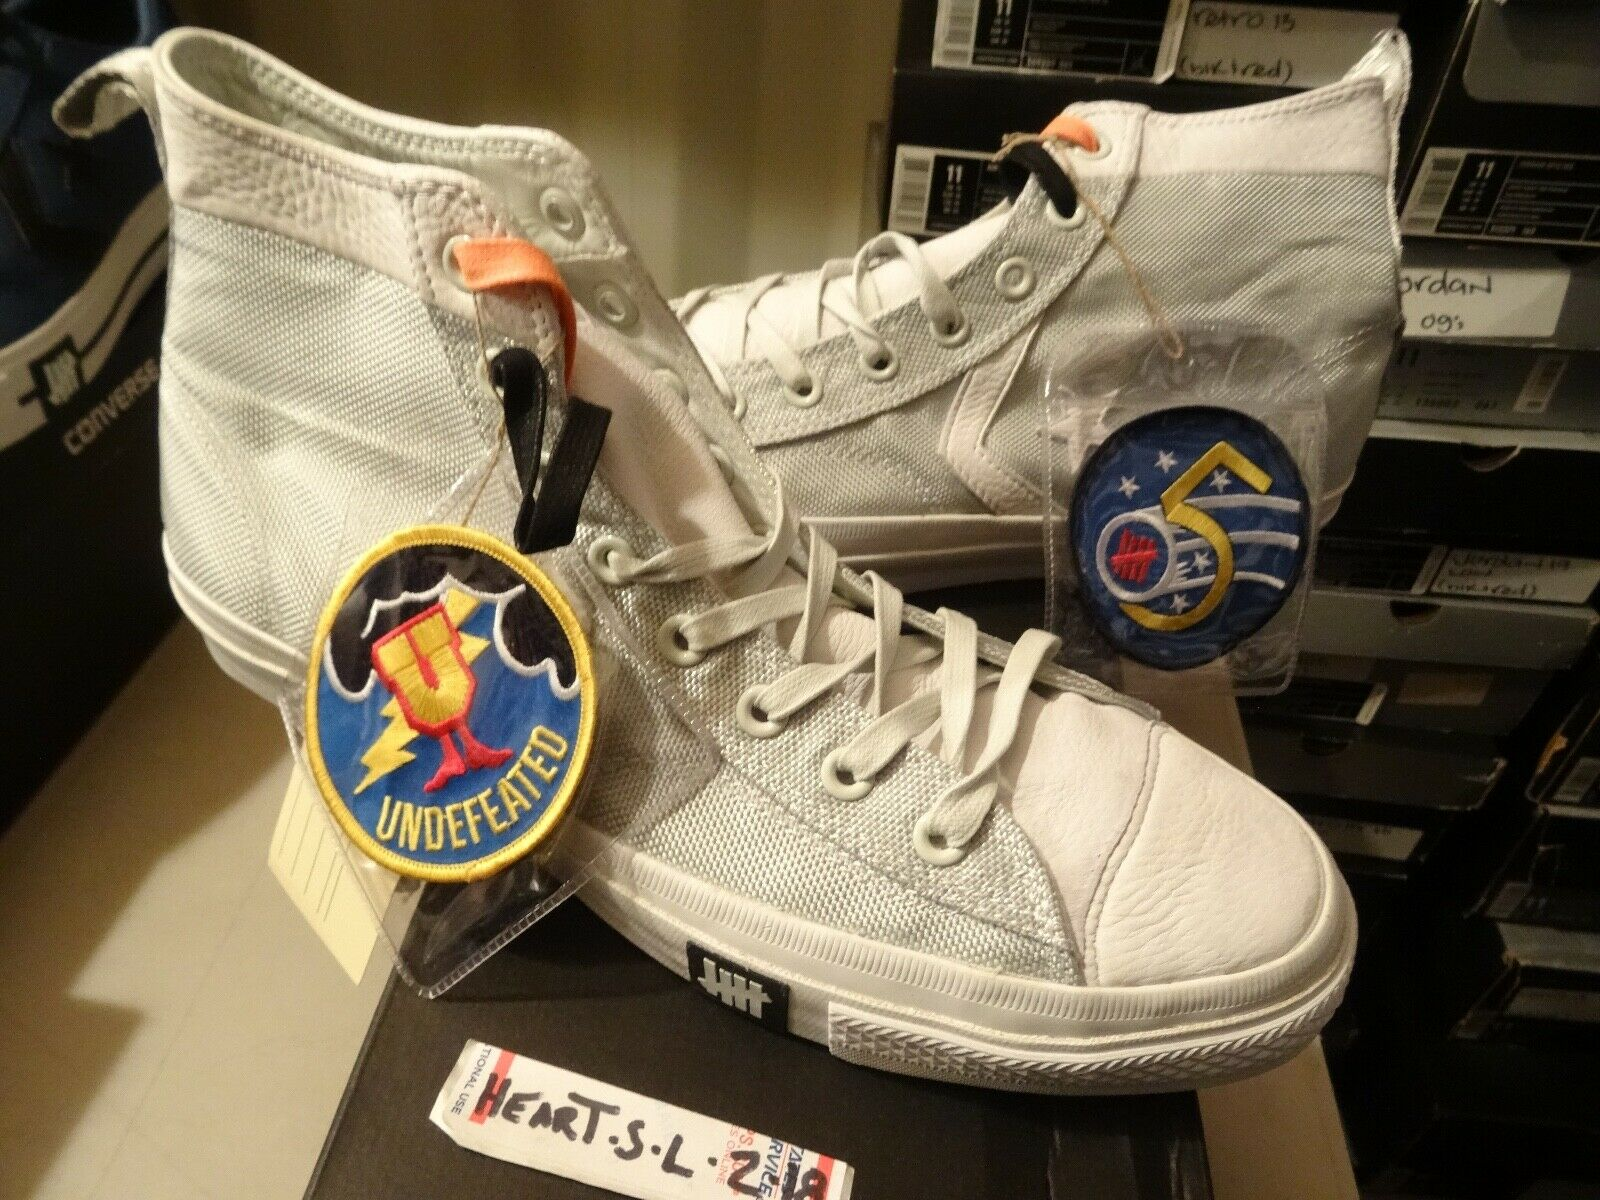 NEW RARE Converse POORMAN WEAPON HI X UNDEFEATED bianca 124130 SZ 13 - STAR